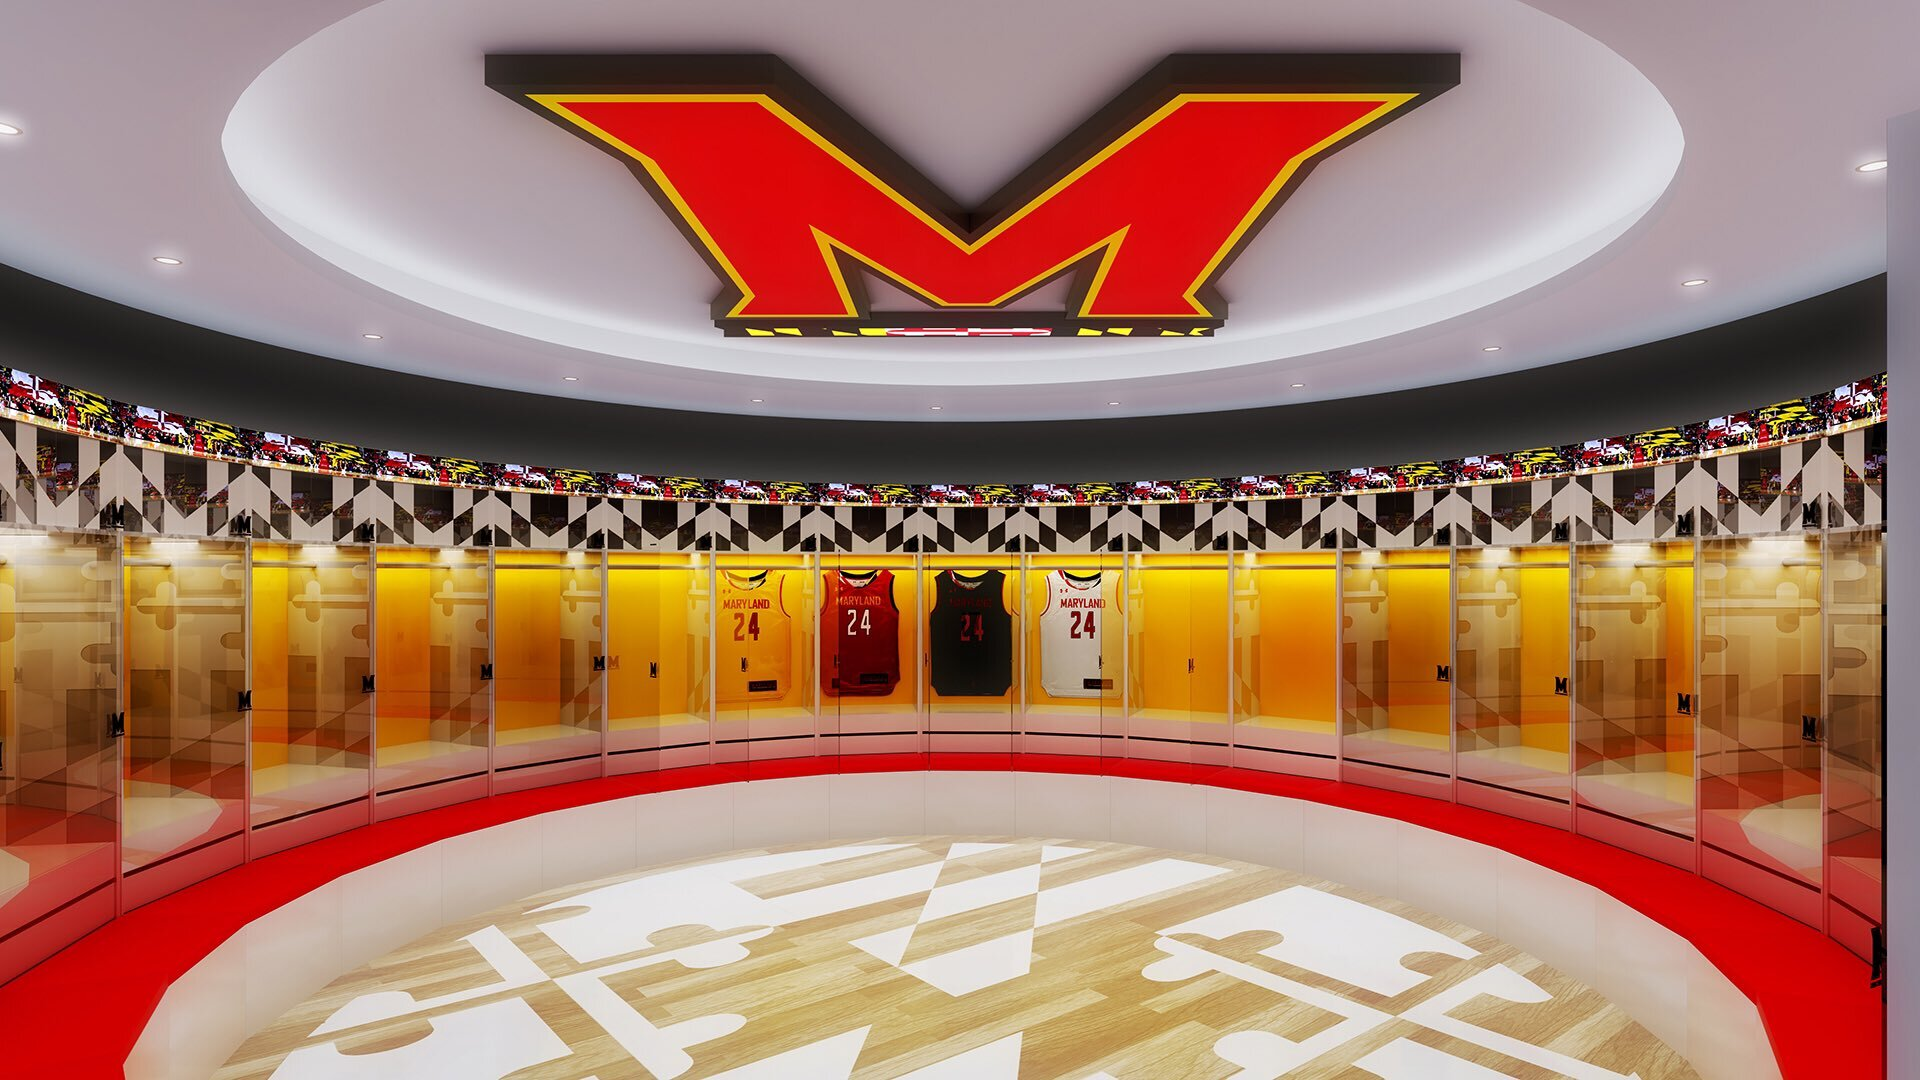 Along with the upgraded locker rooms, it will feature two separate indoor practice courts and a hallway that illustrates the history of Maryland basketball over the seasons. (Maryland Athletics)